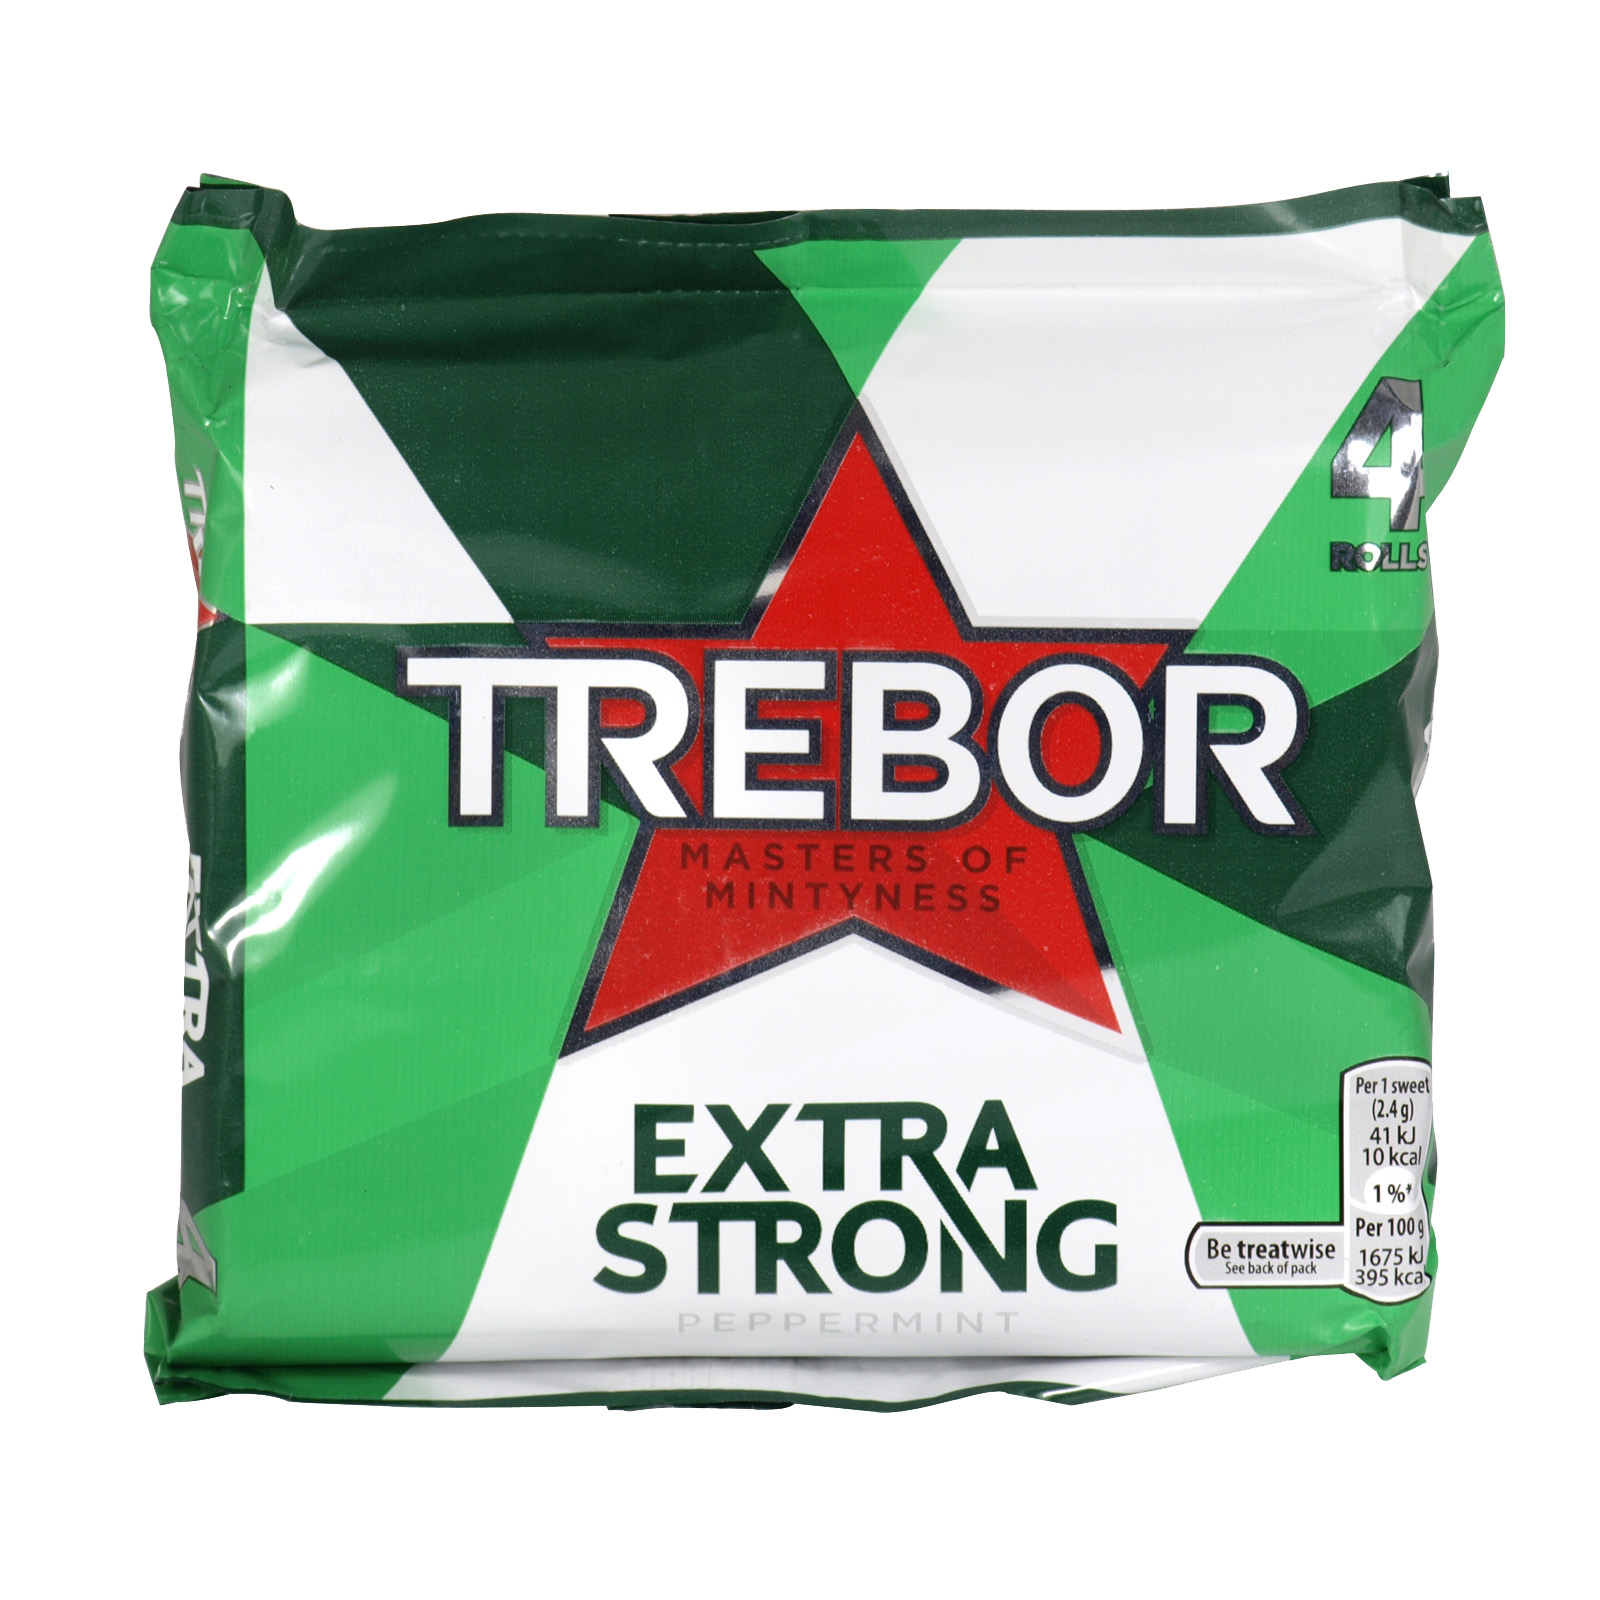 TREBOR EXTRA STRONG 4 PACK  X12